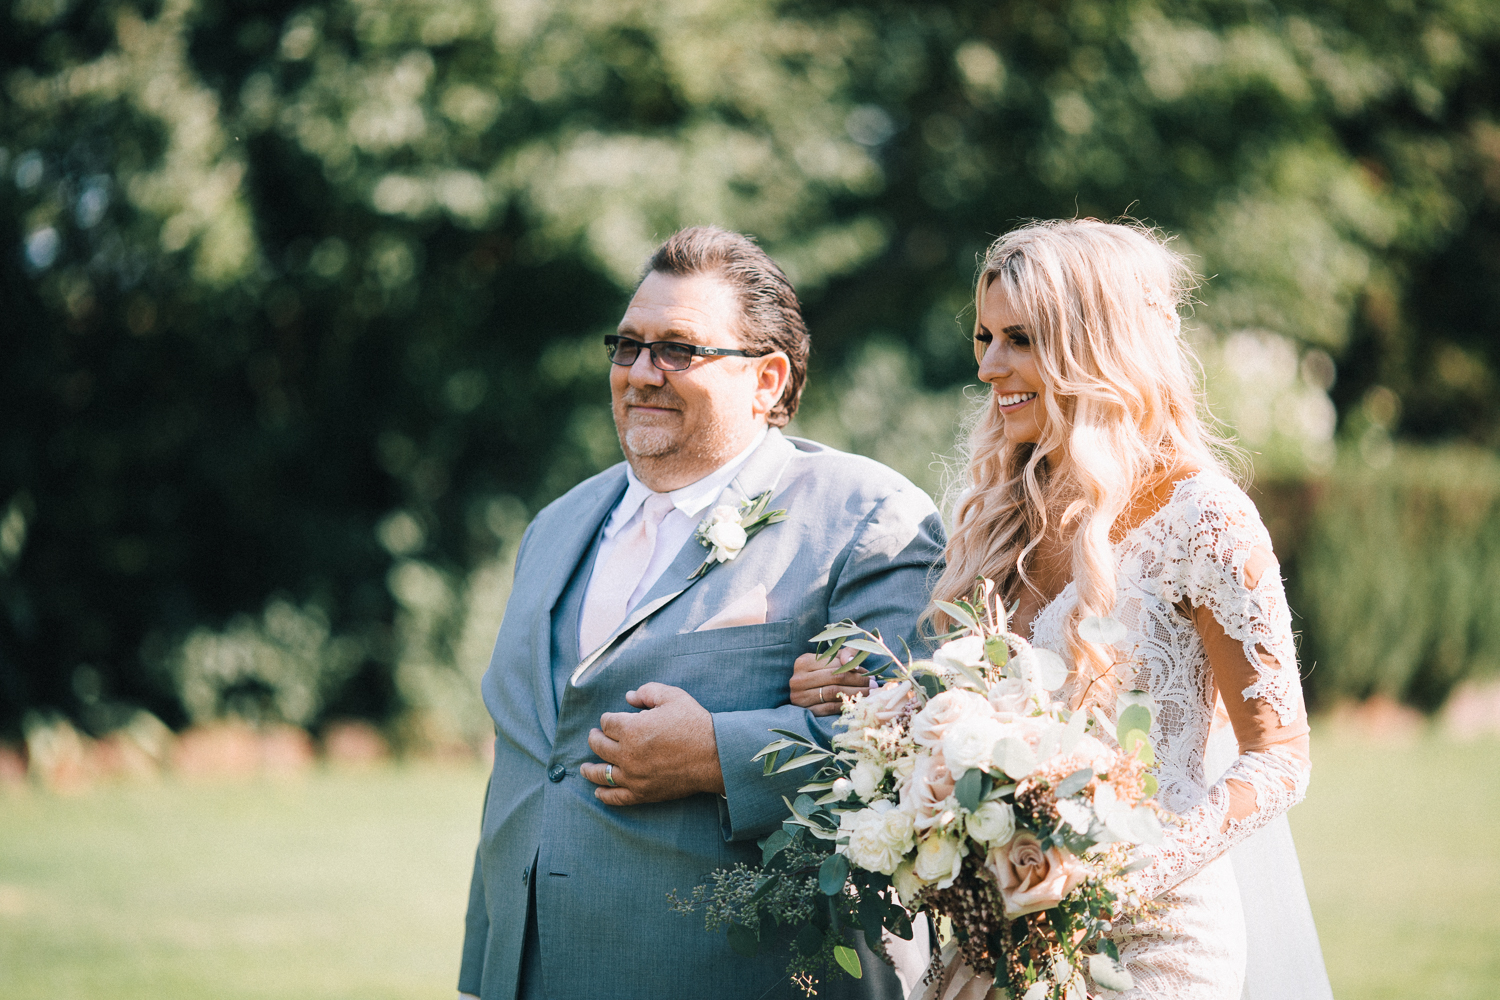 2018_08_ 112018.08.11 Cline Vinyard Wedding Blog Photos Edited For Web 0043.jpg